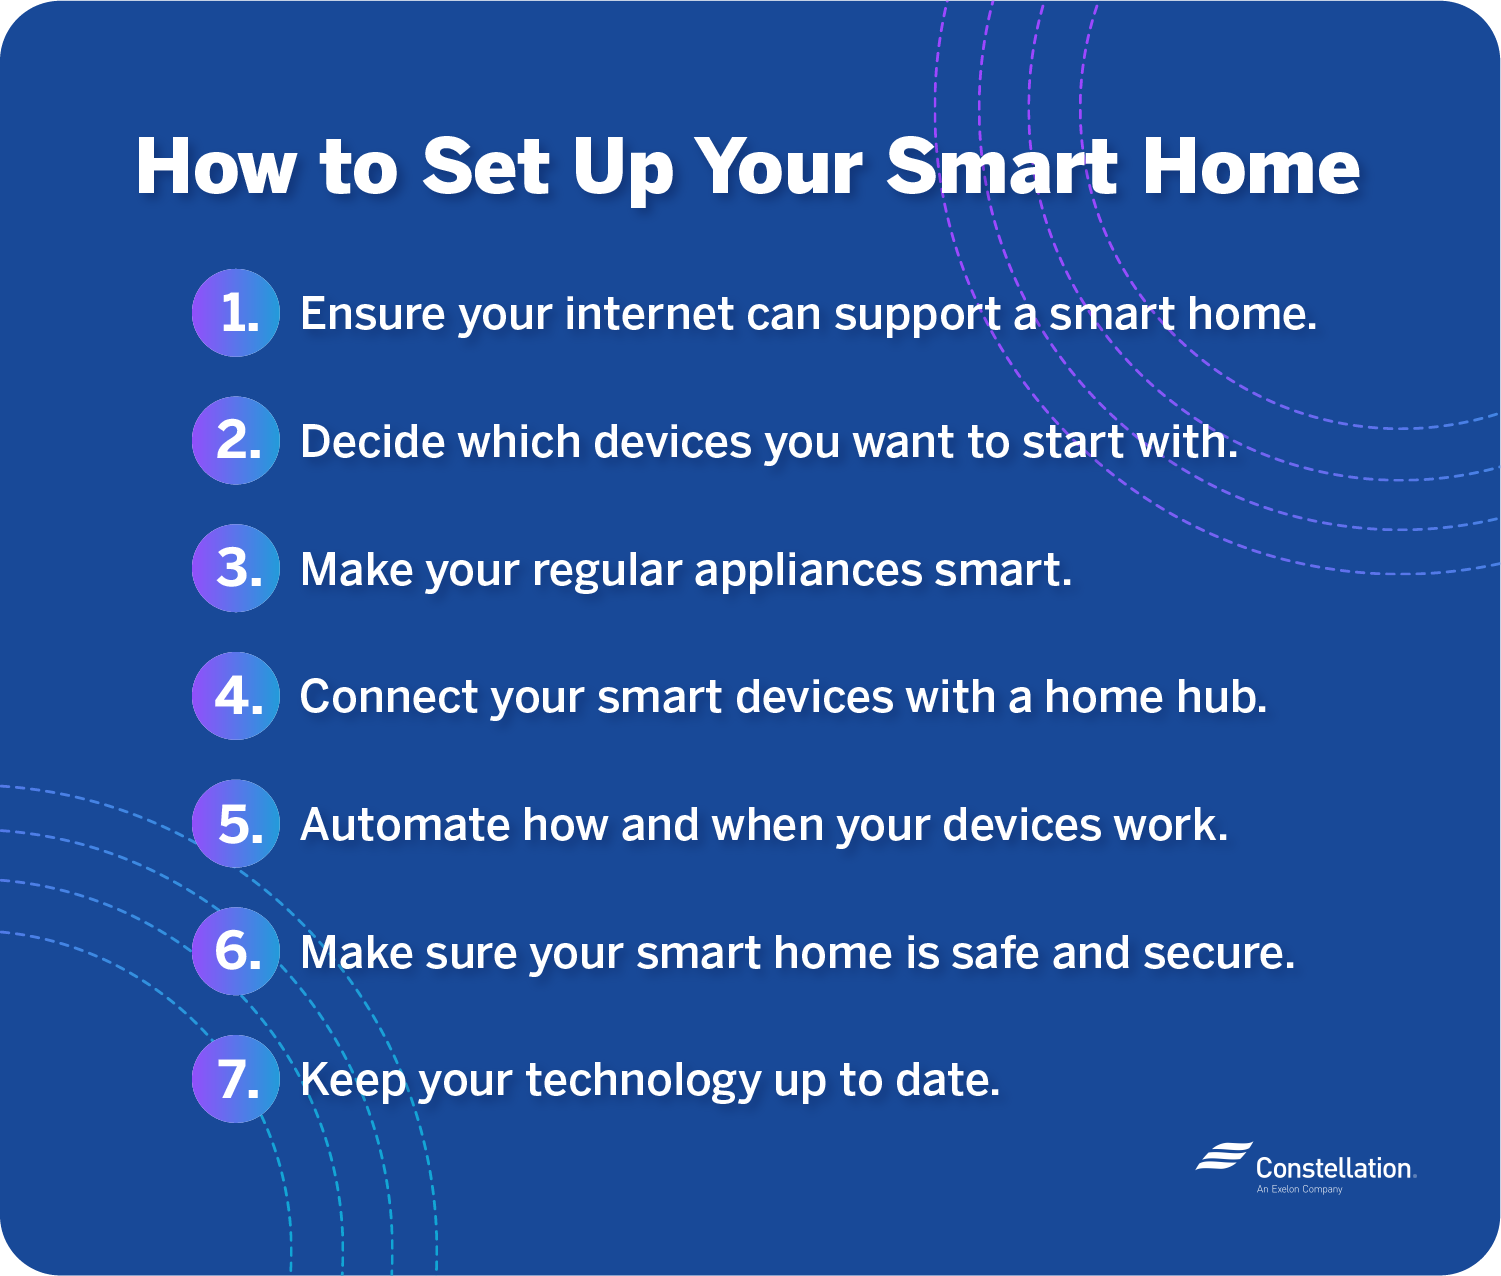 How to set up your smart home